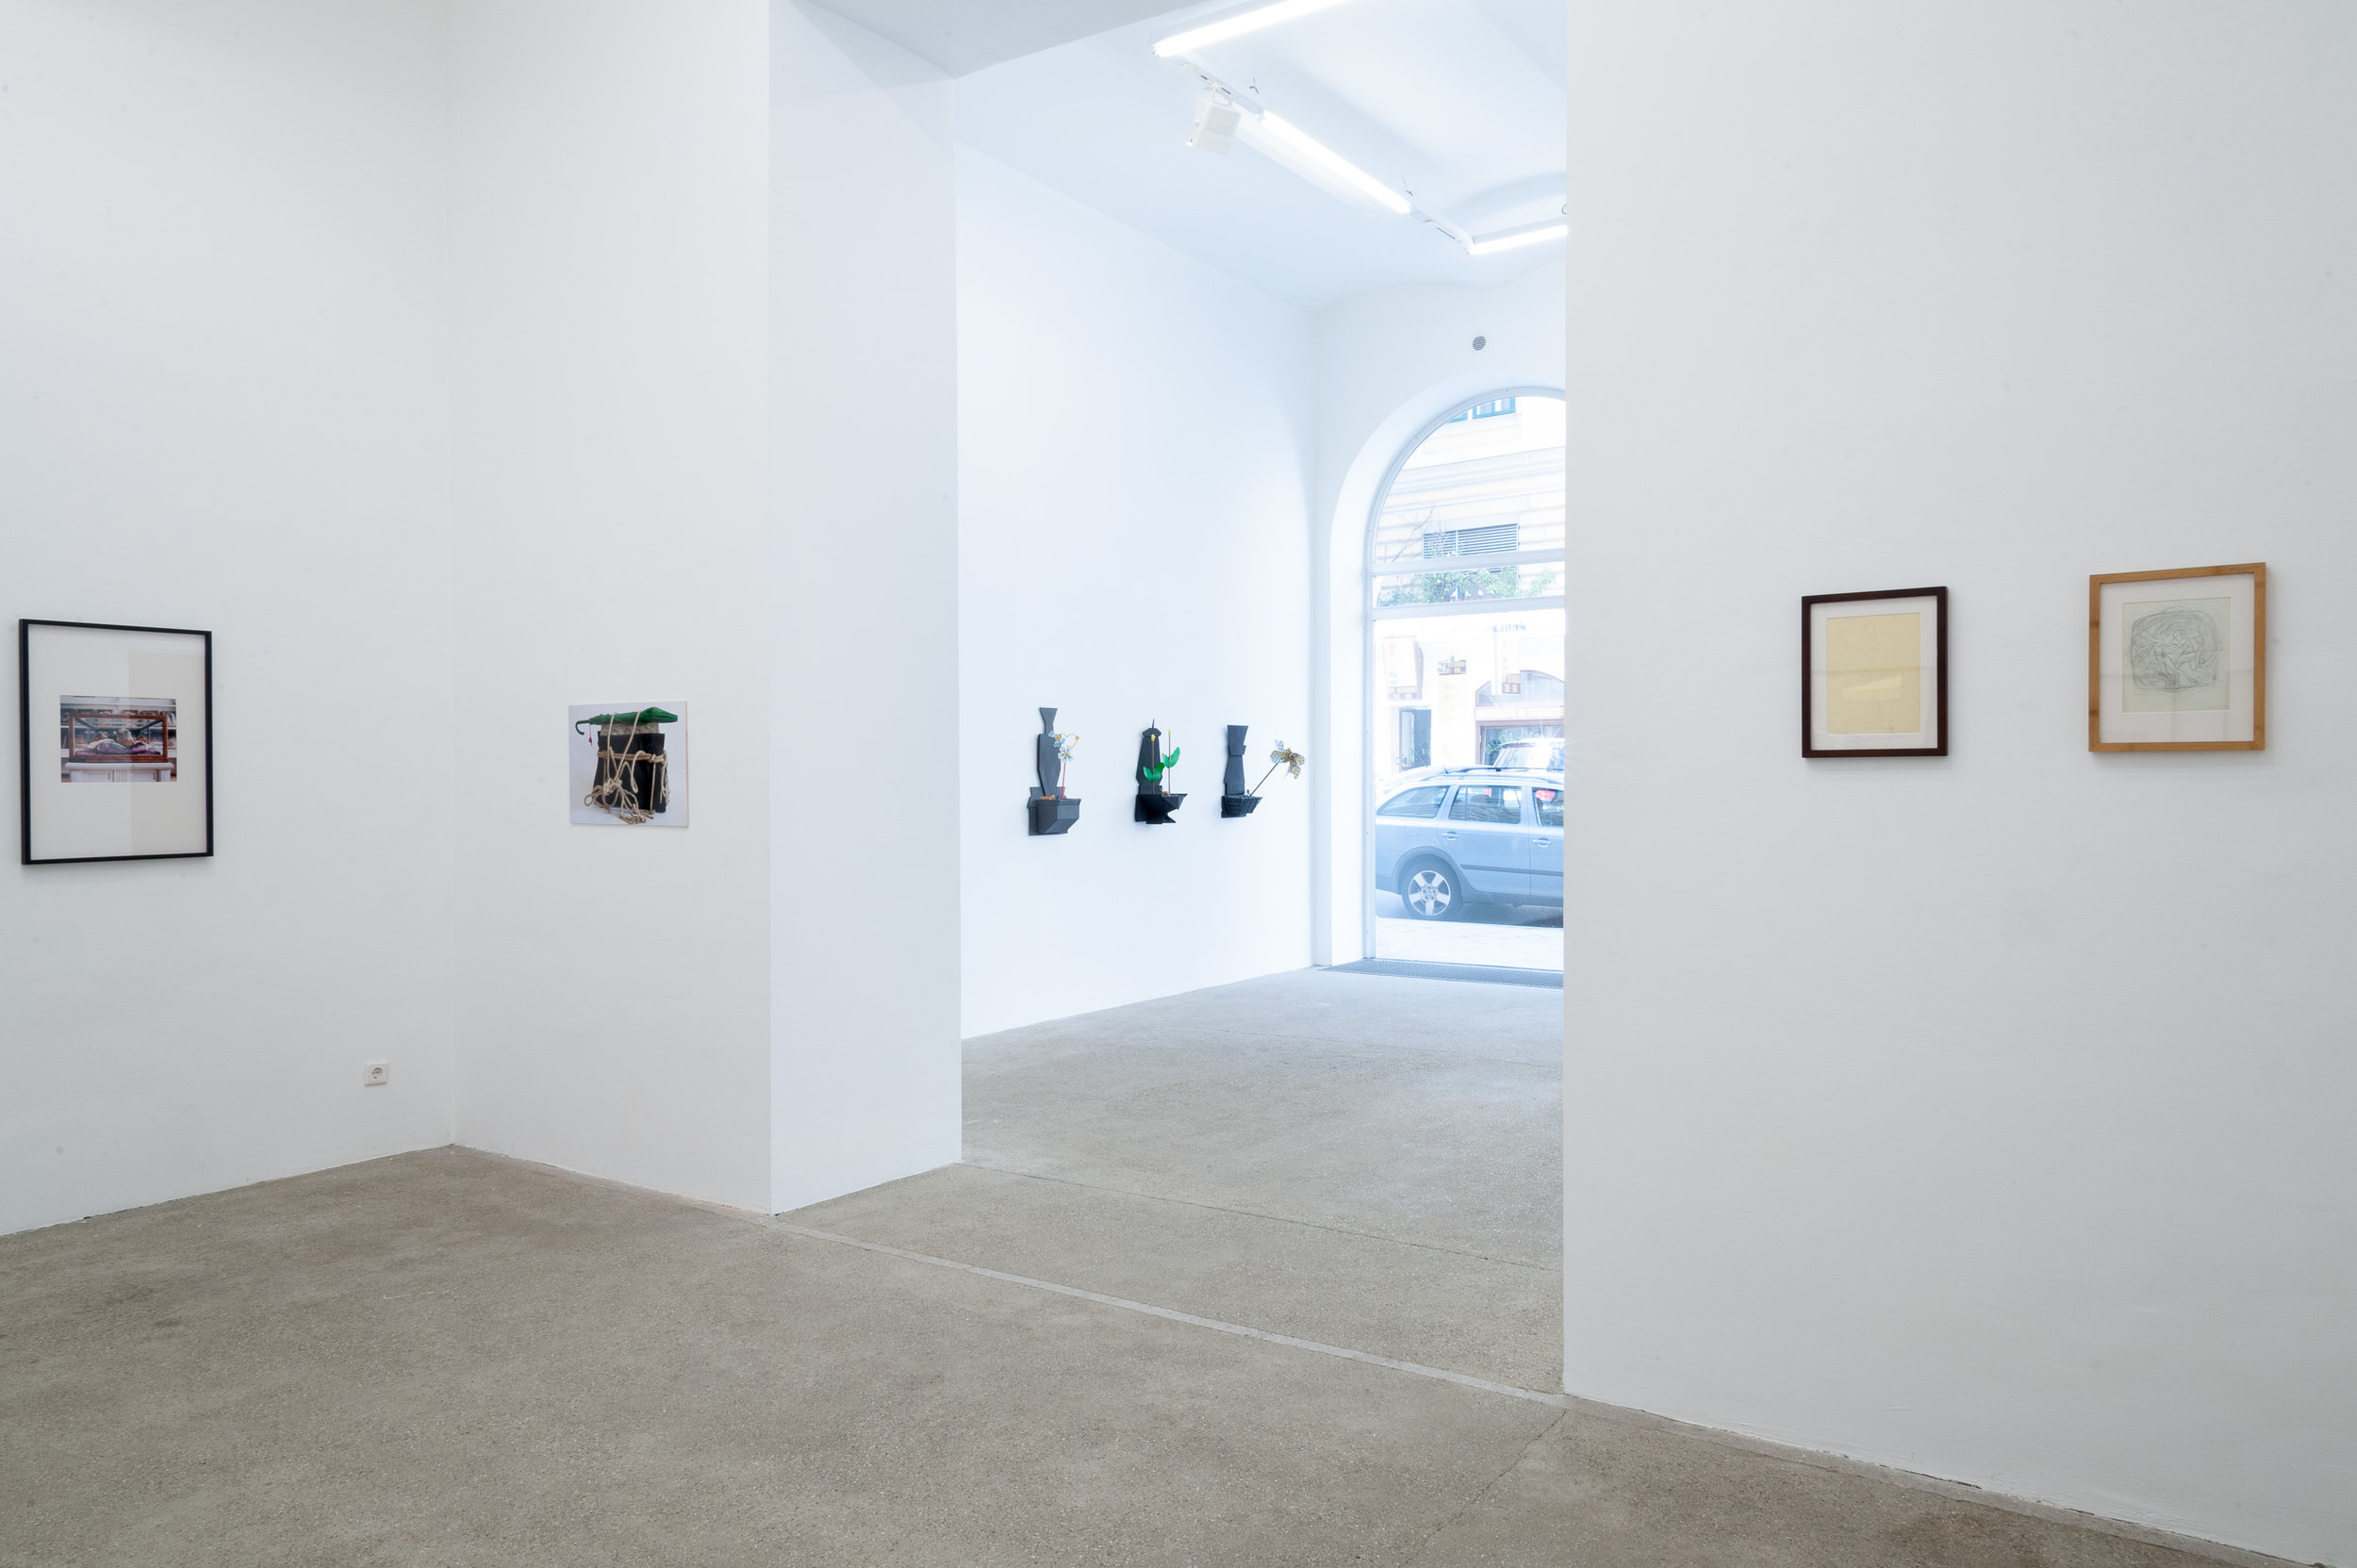 RETRO STORE curated by_Veit Loers, exhibition view, Galerie Elisabeth & Klaus Thoman, Vienna, 2015, Photo: Galerie Elisabeth & Klaus Thoman/ Michael Kofler